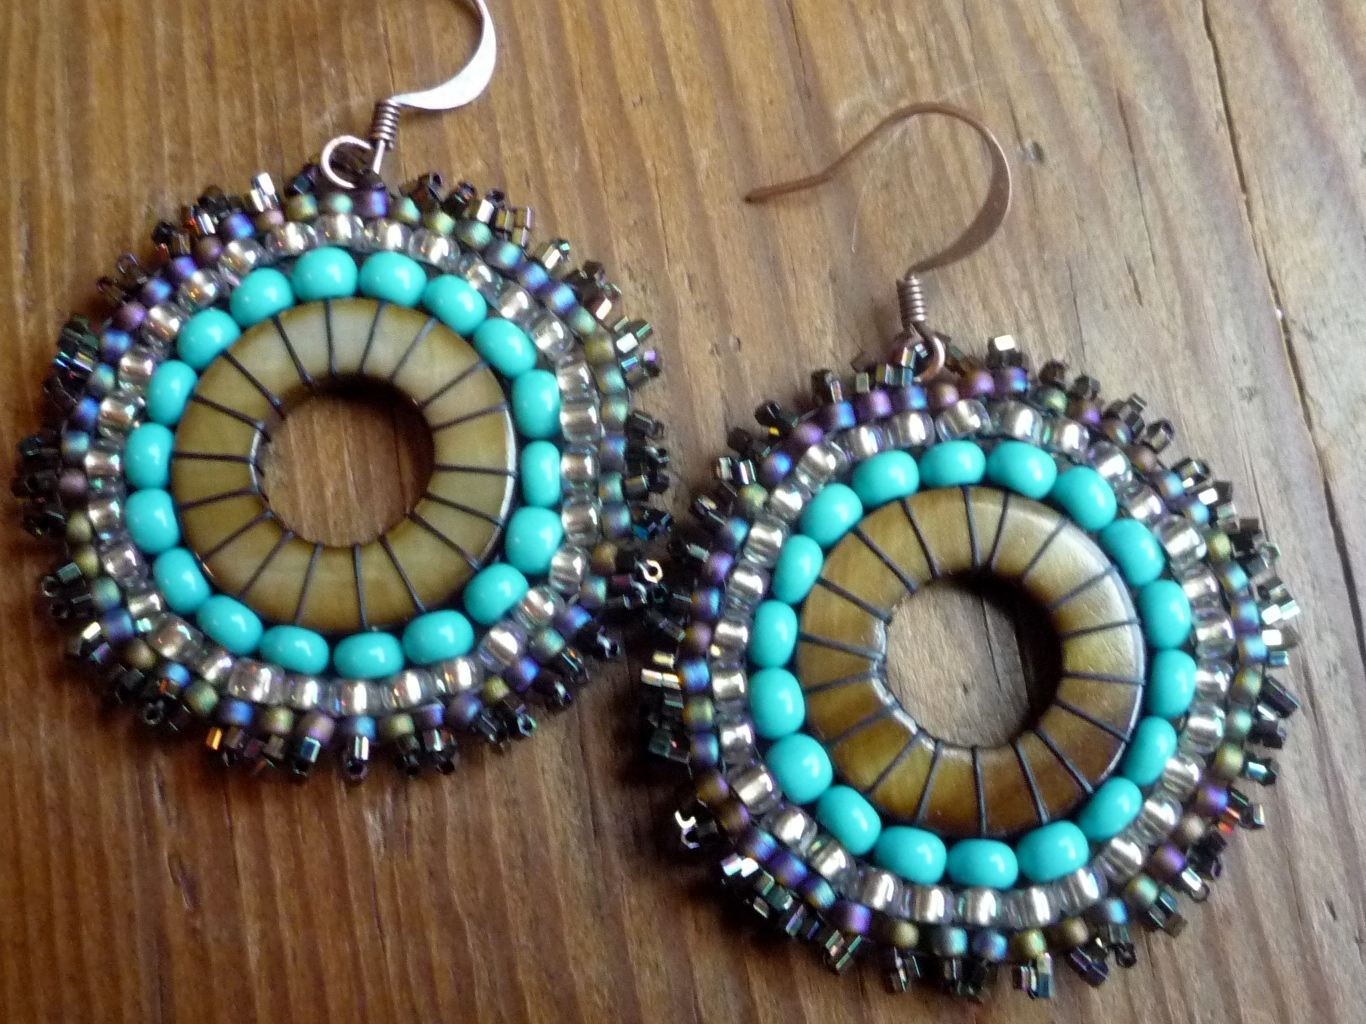 pattern brick earrings beads rotten product luxor stitch spoilt kashmir downloadable earring luxe